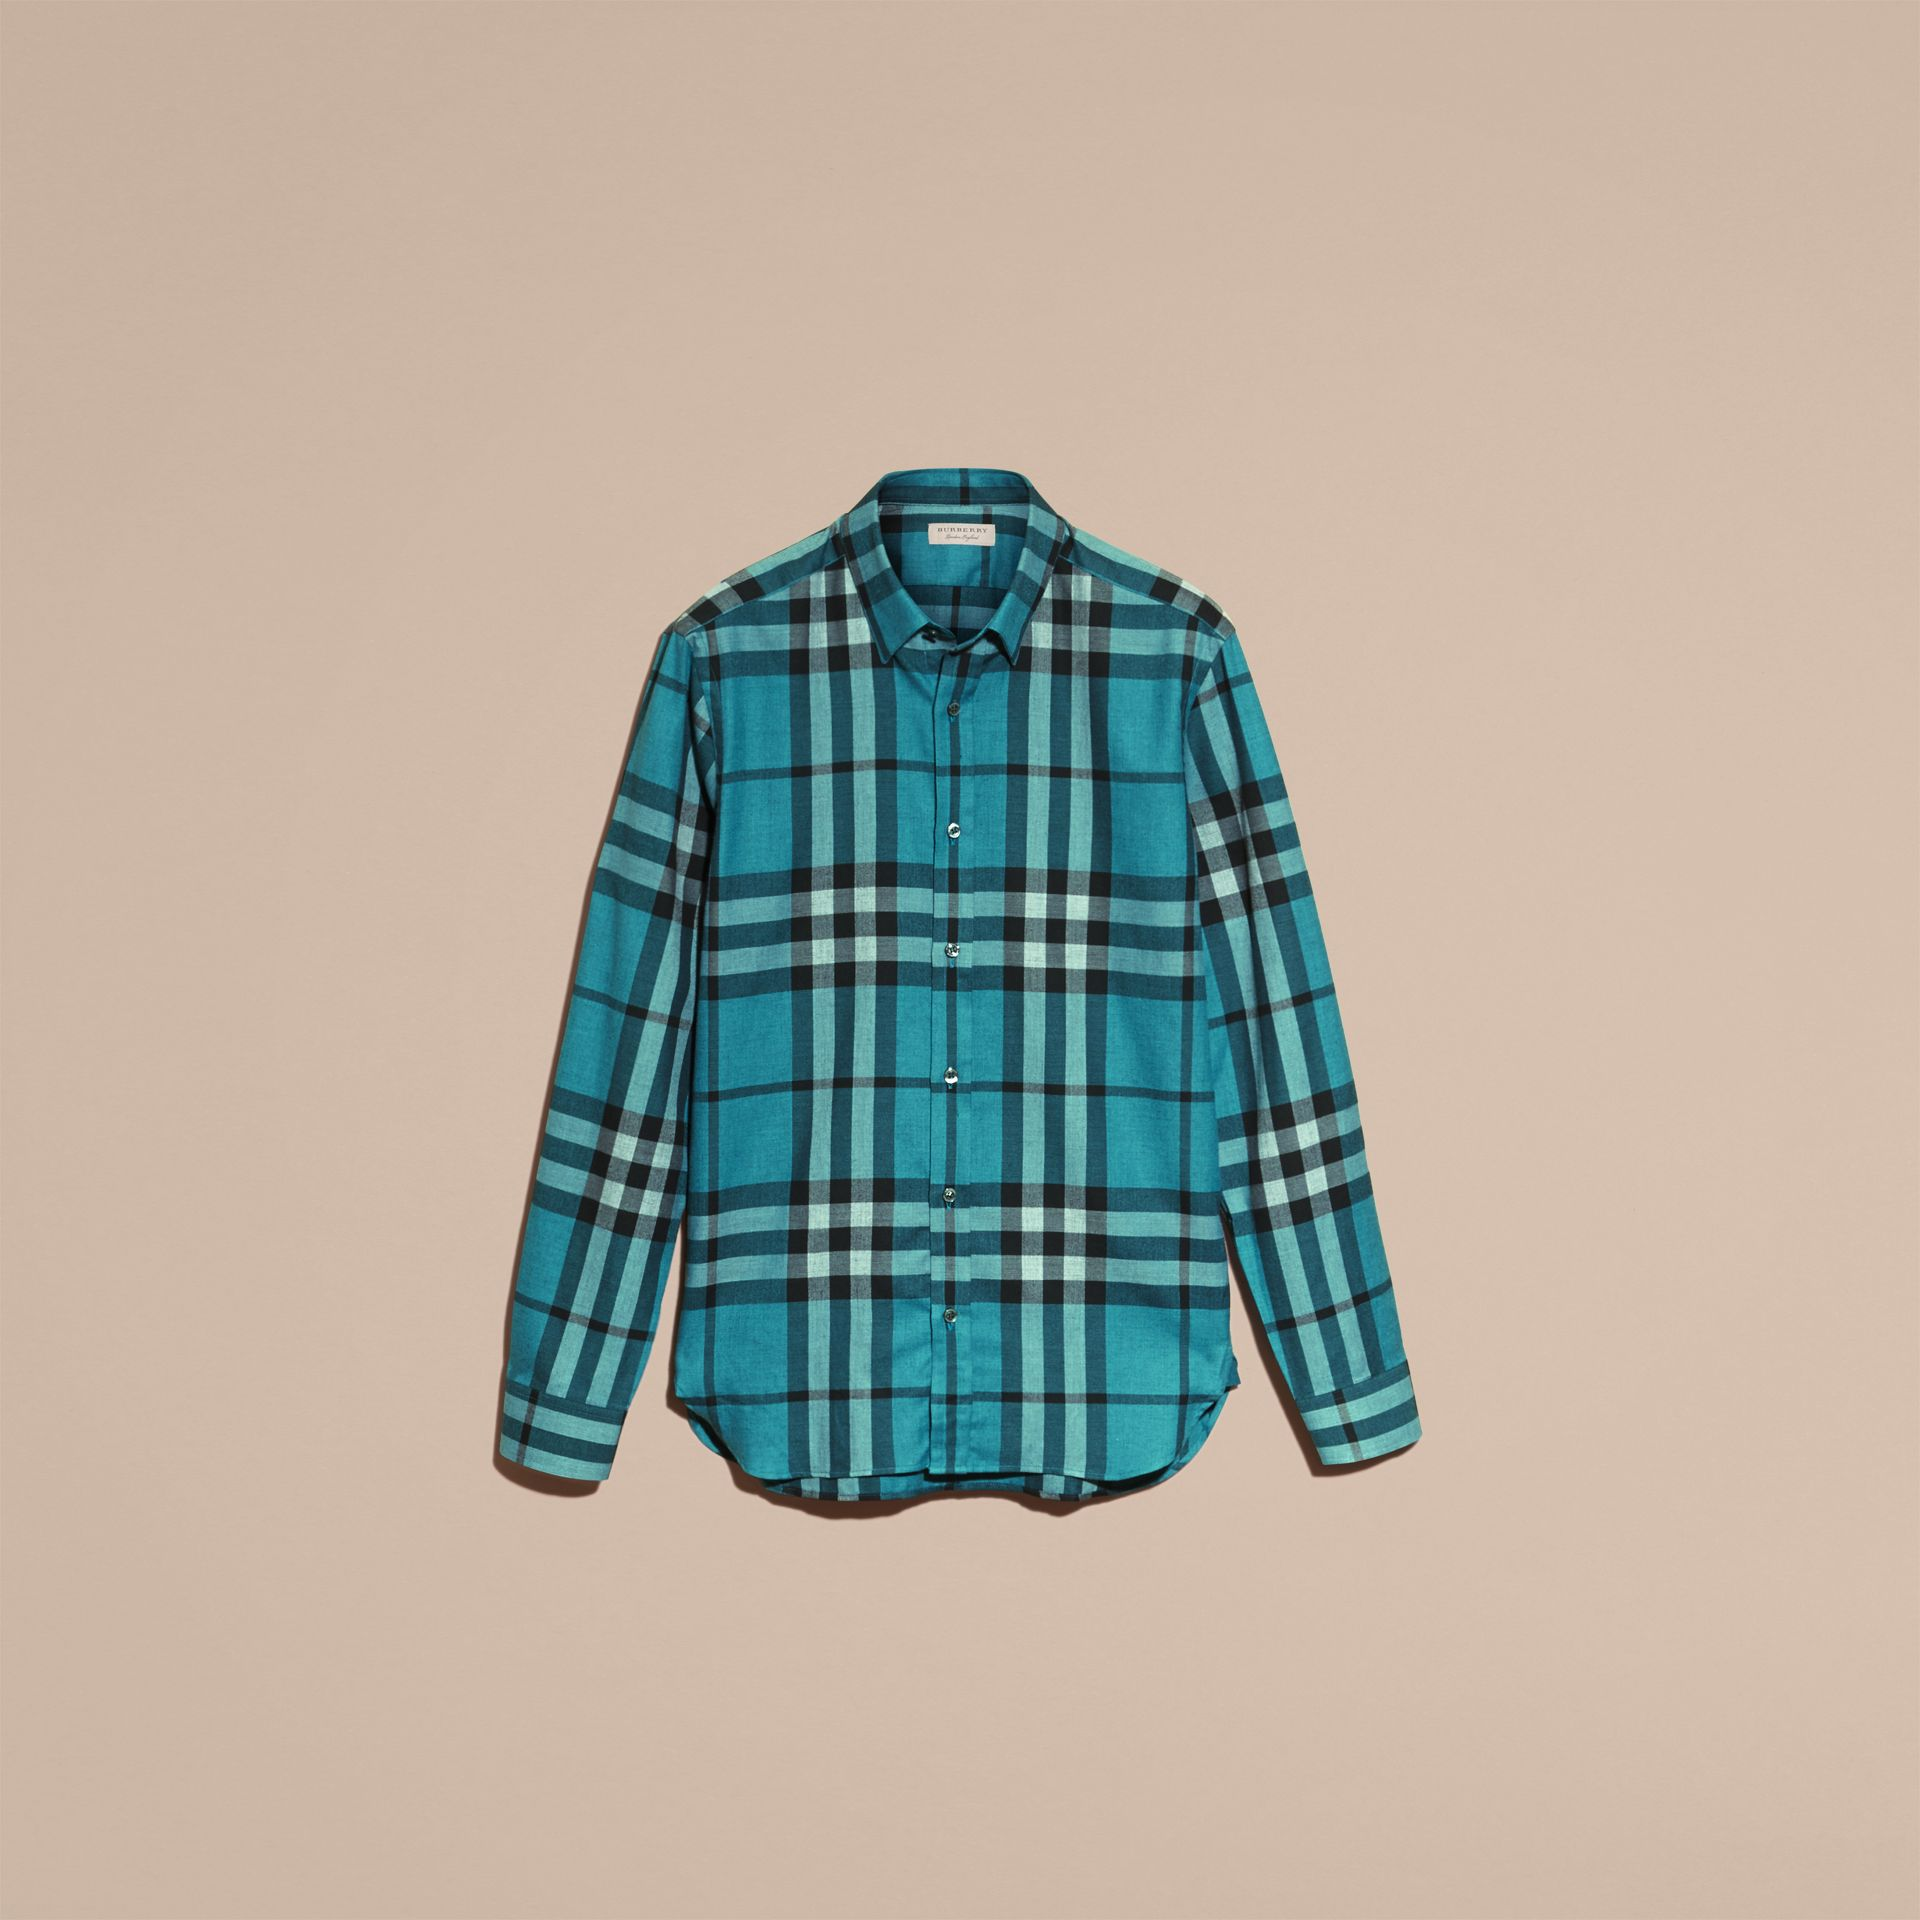 Bright turquoise Check Cotton Cashmere Flannel Shirt Bright Turquoise - gallery image 4